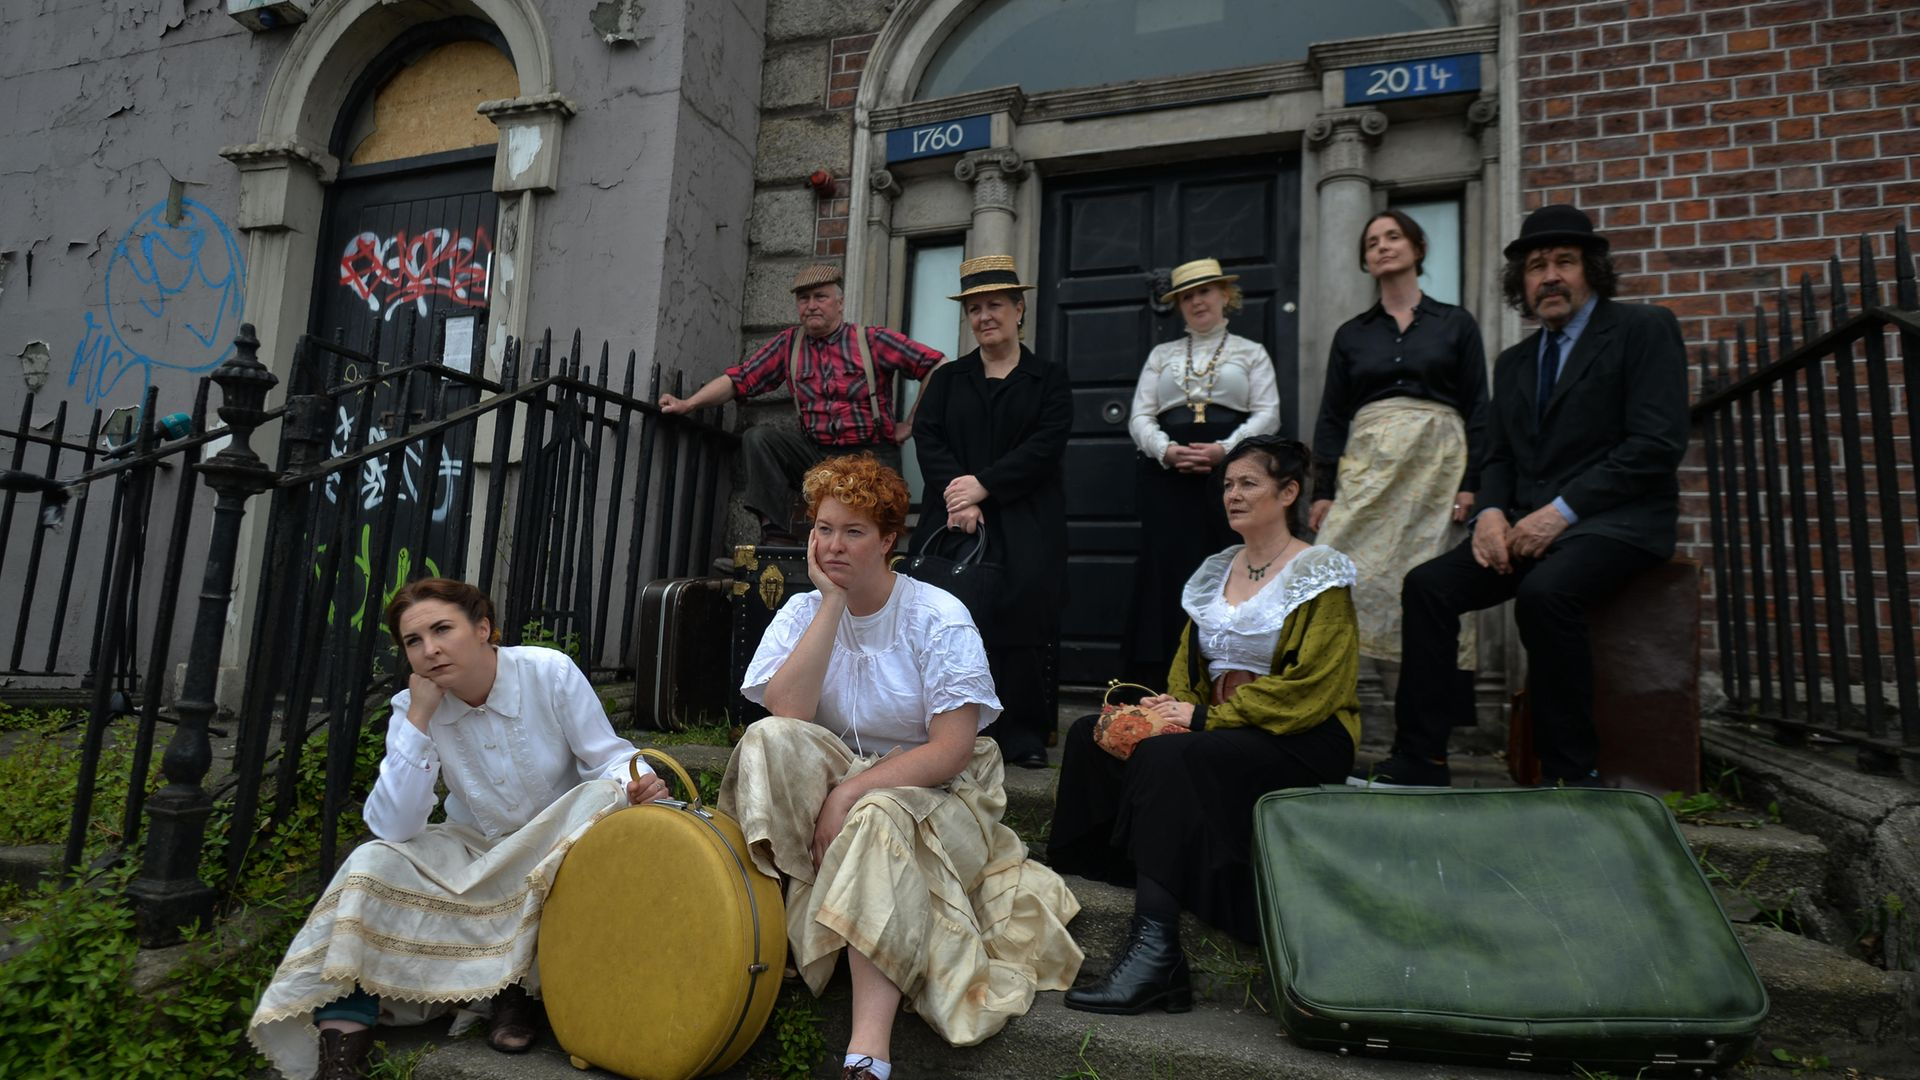 Irish actors (from left) Katie O'Kelly, Donal O'Kelly, Madi O'Carroll, Marion O'Dwyer, Sinead Murphy, Maria Hayden, Rachael Dowling and Stephen Rea, protest in front of 15 Usher's Island, made famous by a James Joyce short story, The Dead - Credit: NurPhoto via Getty Images